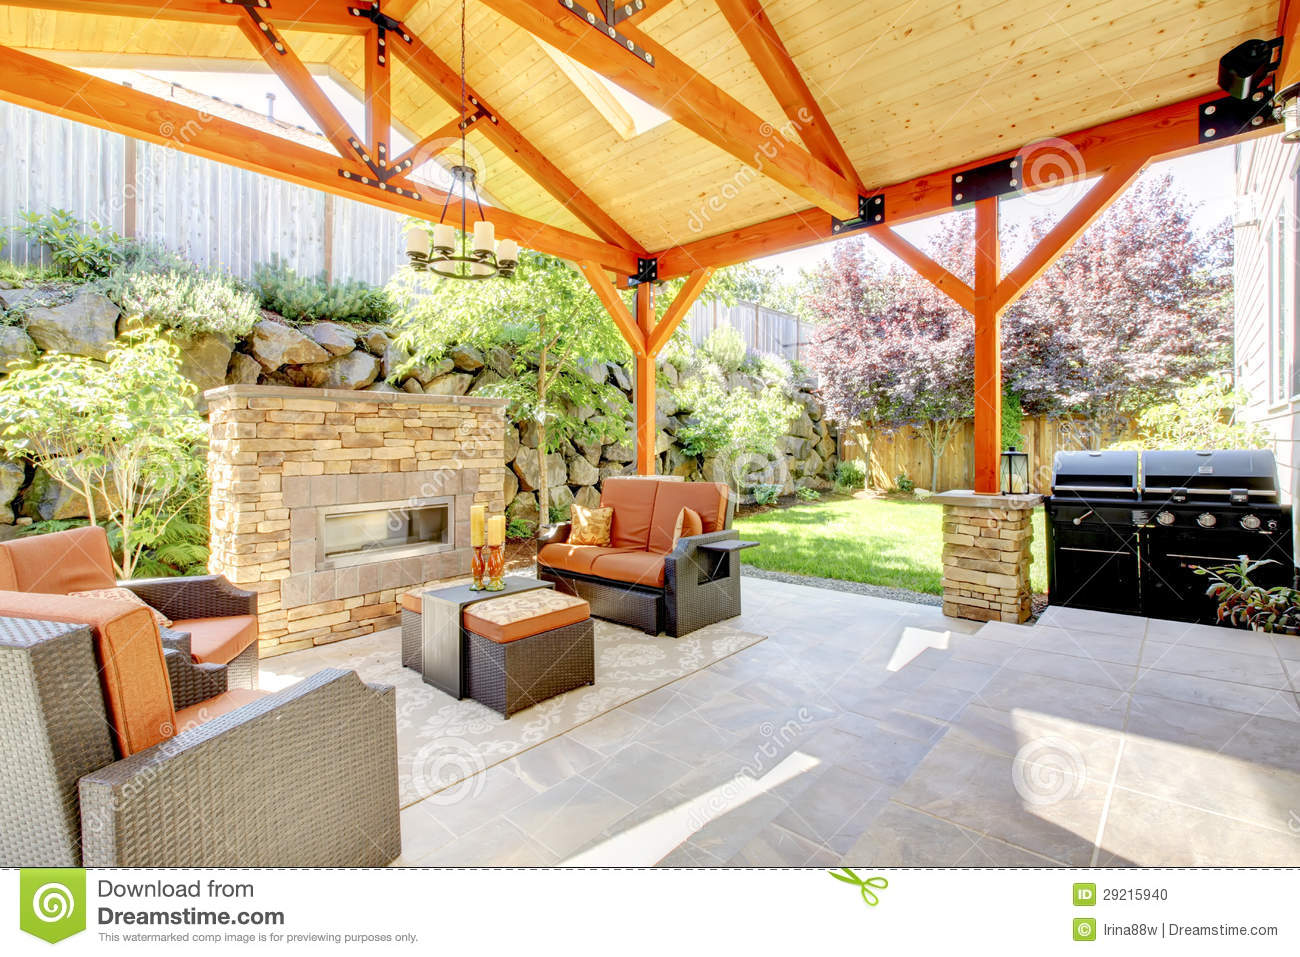 Exterior Covered Patio With Fireplace And Furniture Stock Image 292